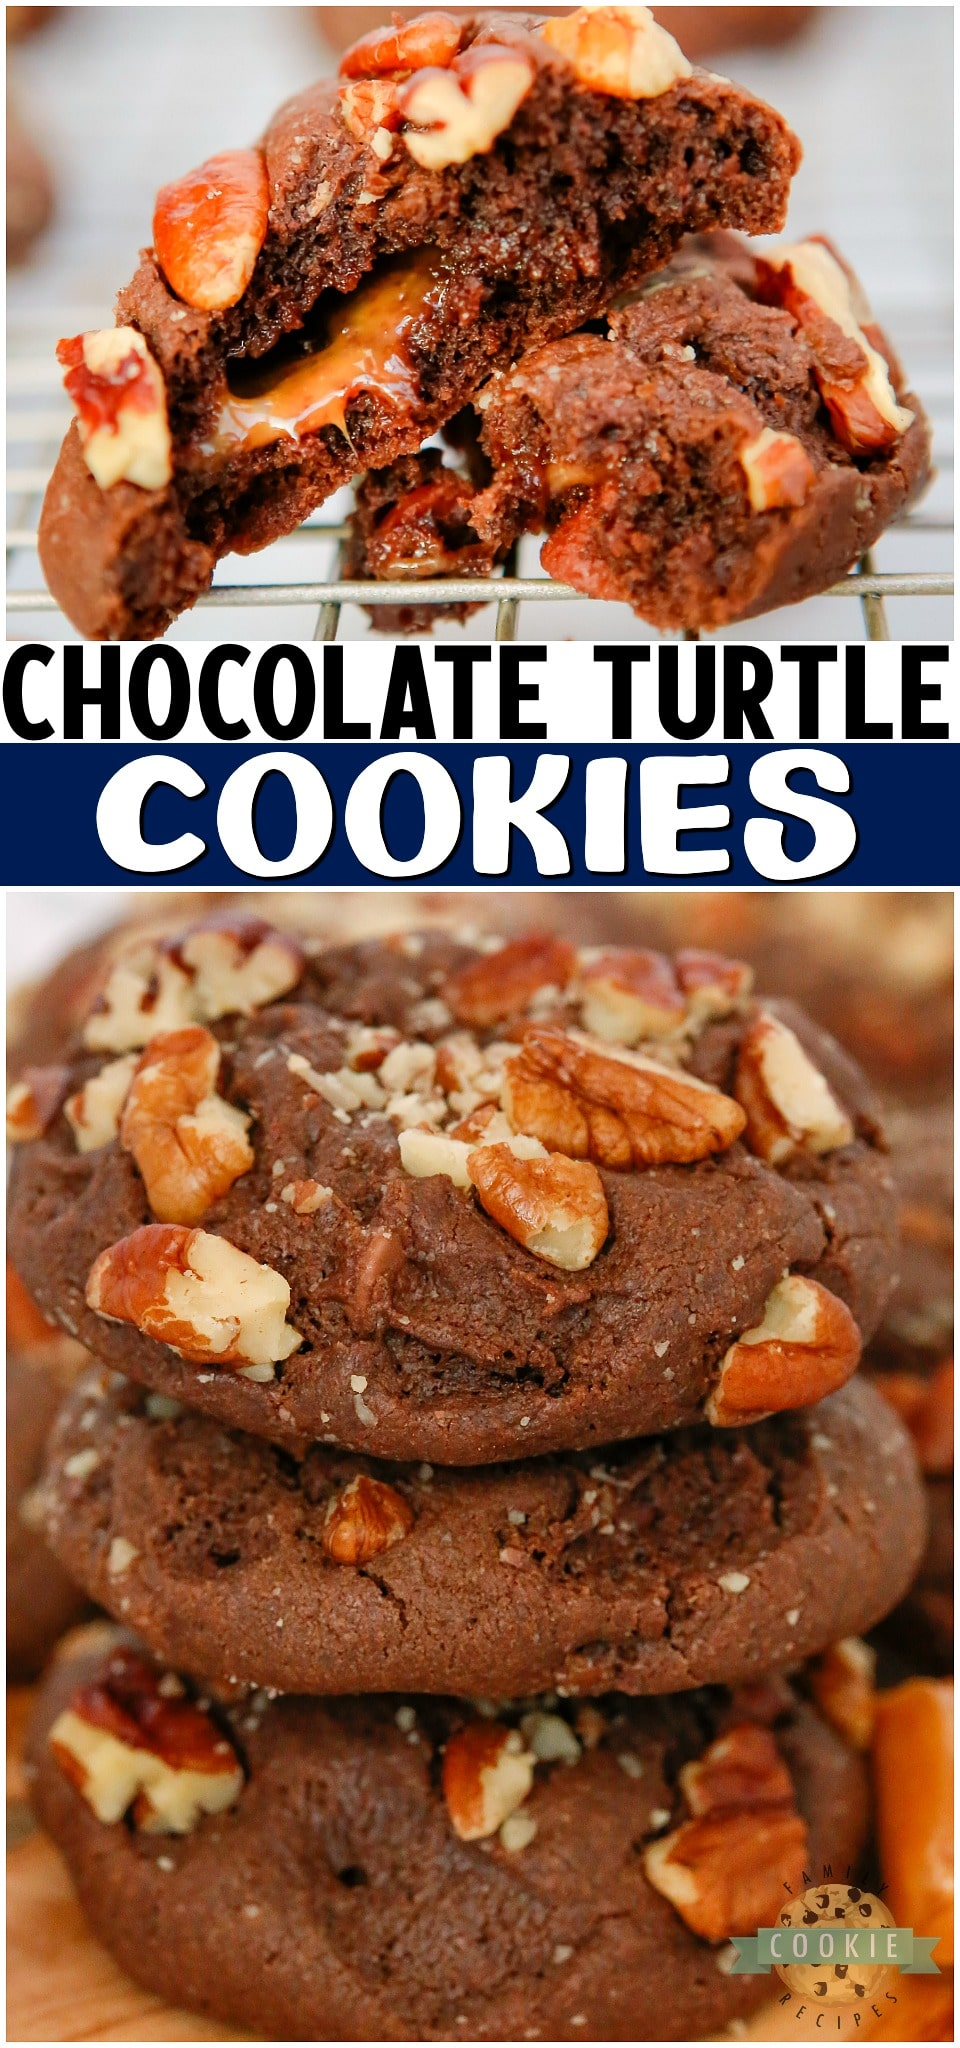 Chocolate Turtle Cookies are double chocolate chip cookies stuffed with caramel & pecans! Decadent Turtle Cookie recipe that everyone loves! #cookies #chocolate #caramel #pecan #turtles #baking #dessert #easyrecipe from FAMILY COOKIE RECIPES via @familycookierecipes